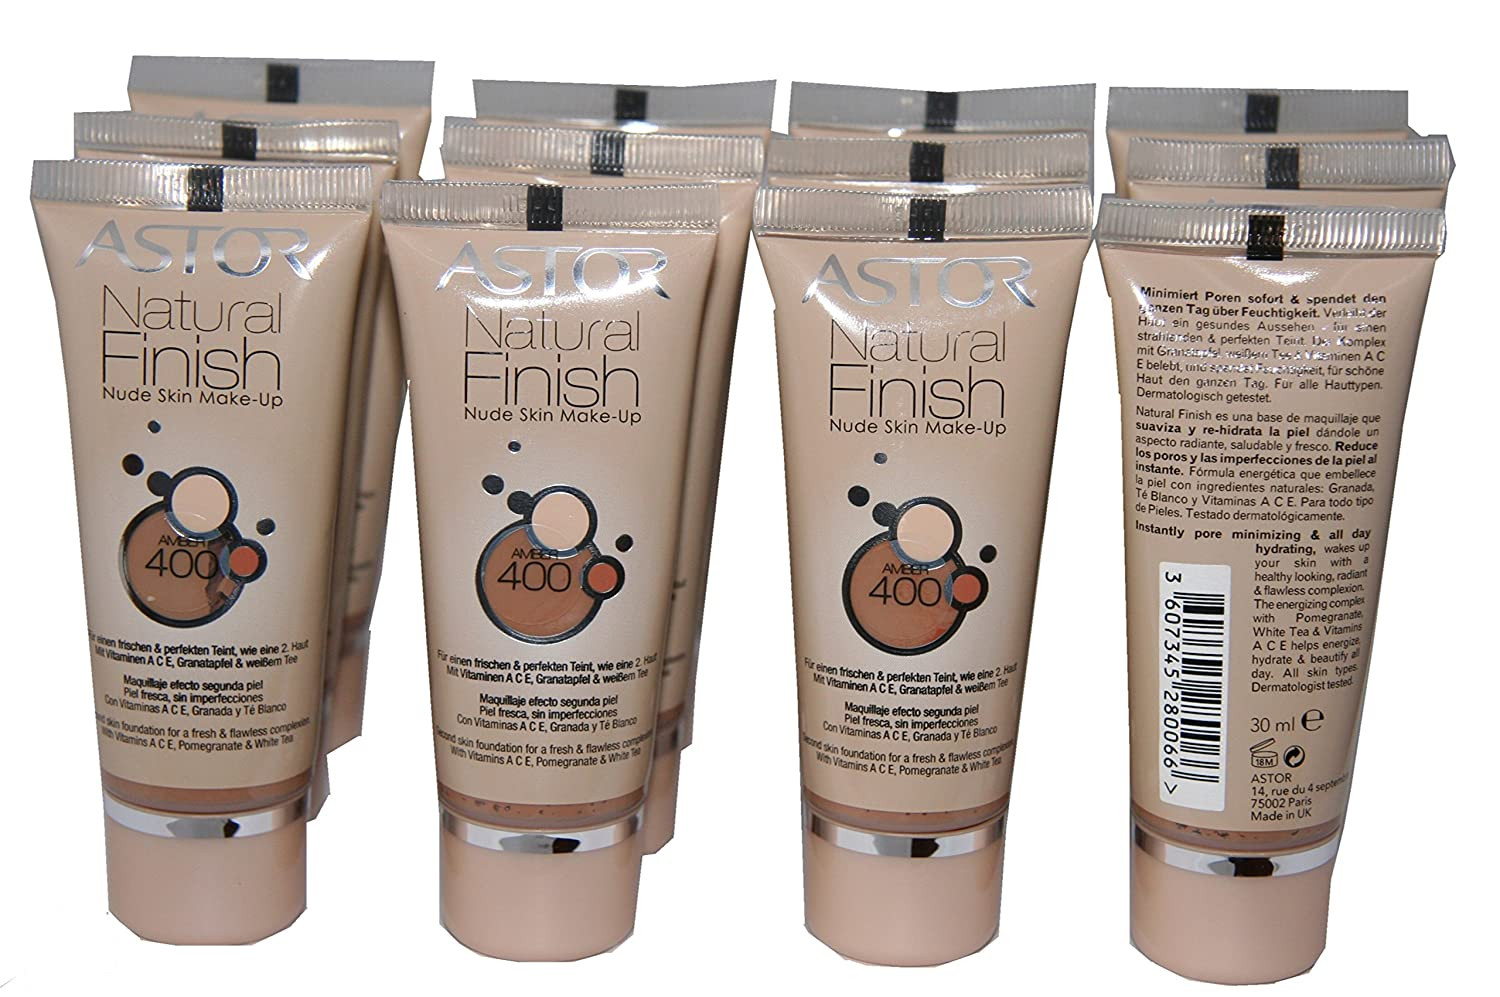 Amazon.com: 12 x Astor Natural Finish Nude Skin Makeup Foundation | Amber | RRP £60 by ASTOR: Beauty